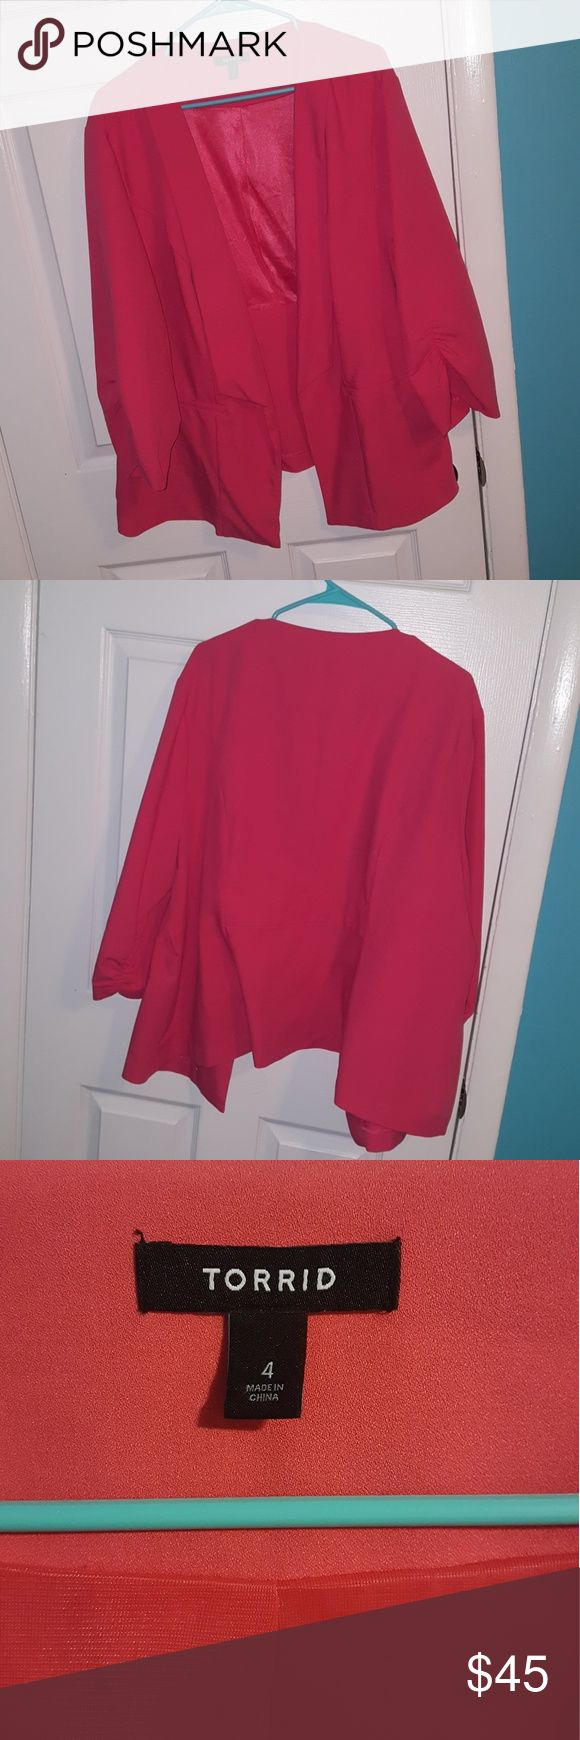 4 Torrid Hot Pink Blazer Never been worn. Perfect for work. Rouched sleeves and faux pockets. Coming from a smoke and pet free home. torrid Jackets & Coats Blazers